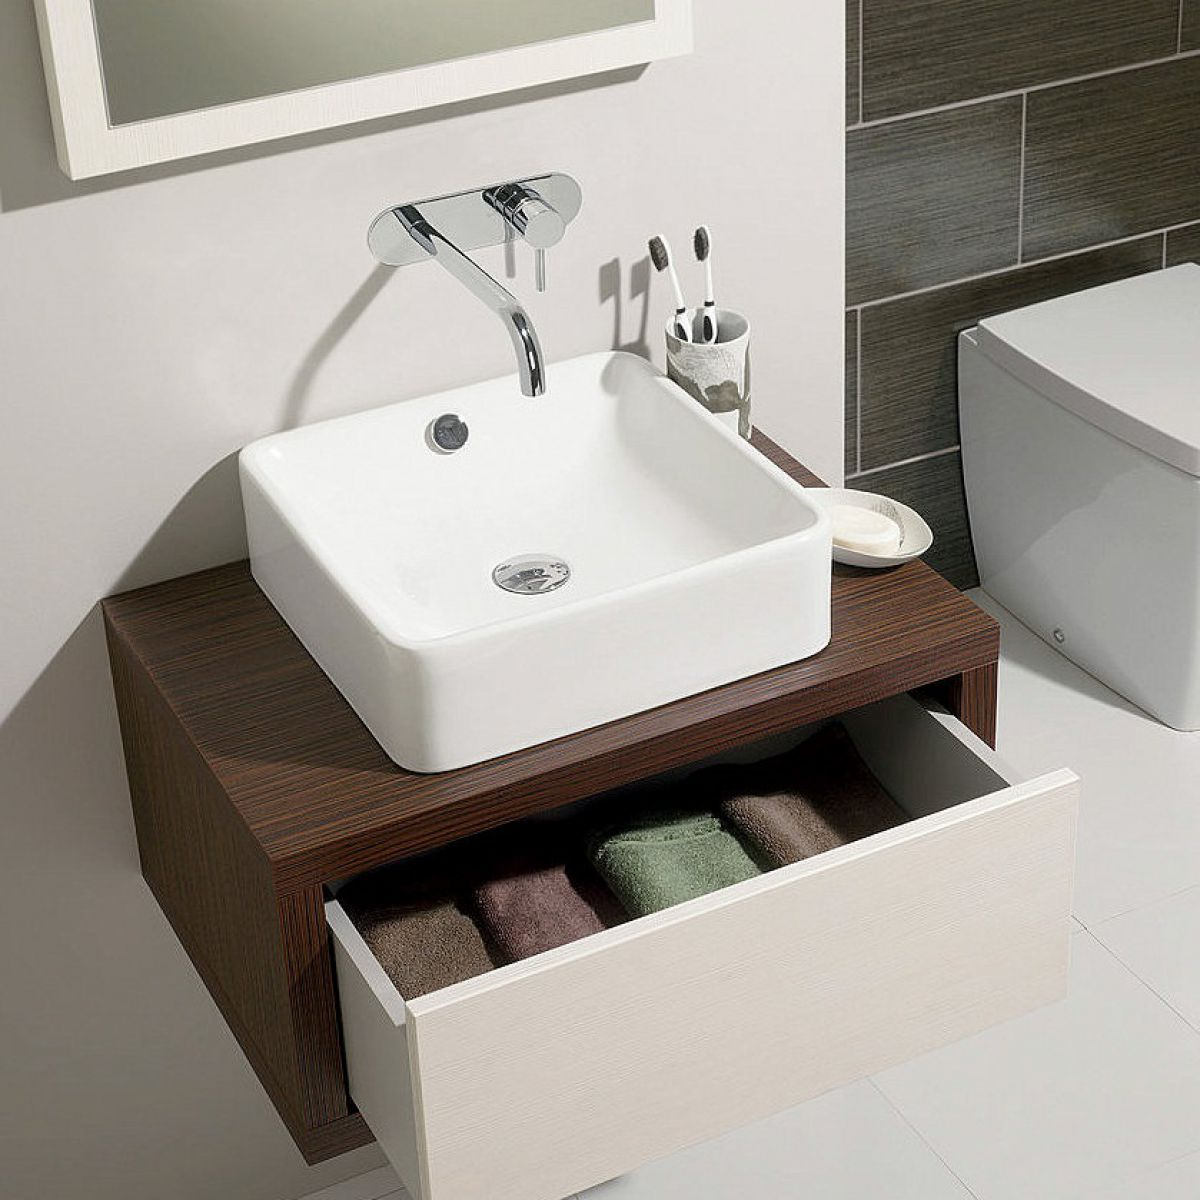 cabinets rectangular as bathrooms top white vanities small vanity with undermount grey sinks bathroom square